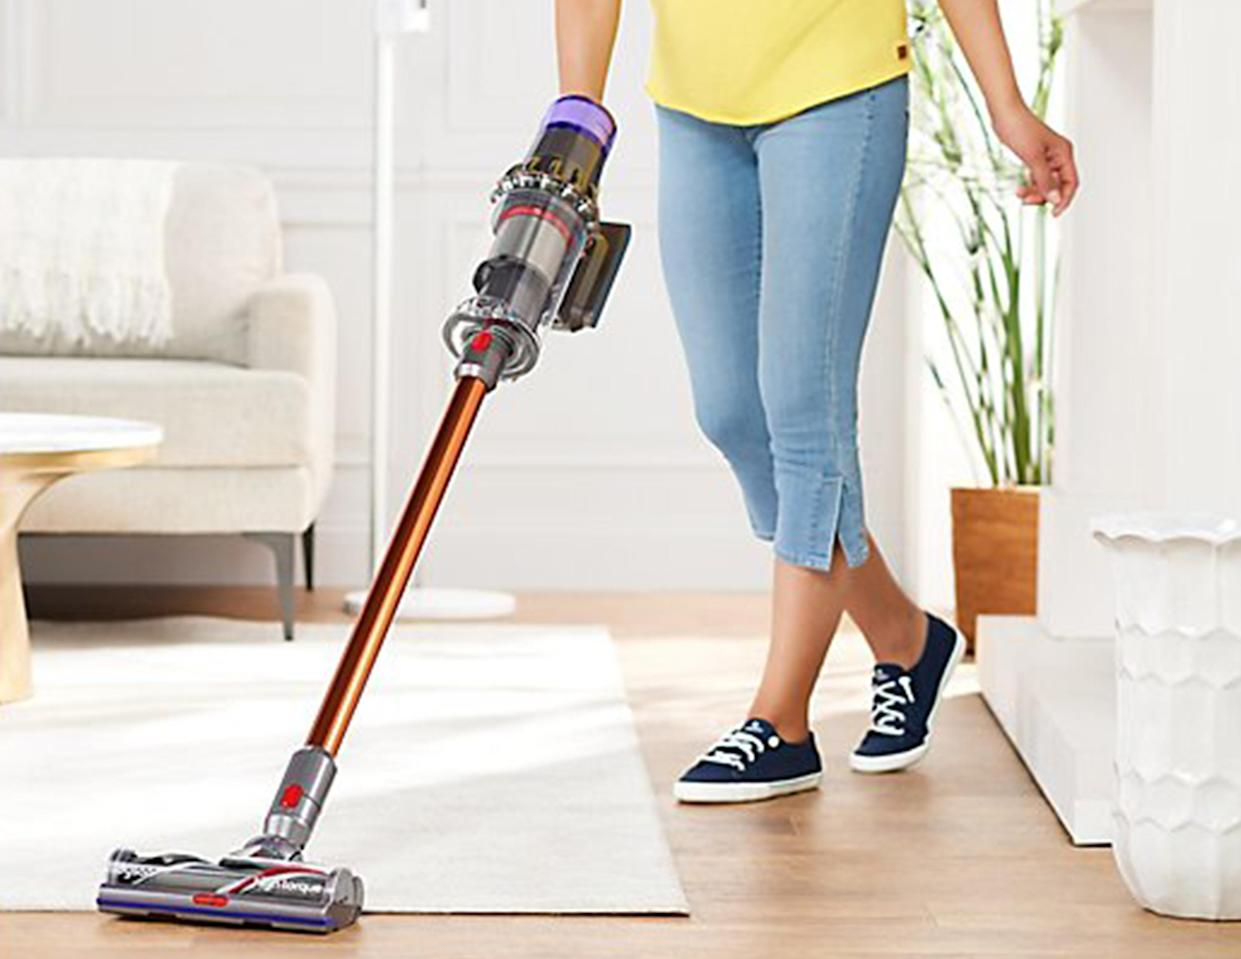 We're gonna level with you: The V11 effortlessly adapts from the shaggiest of rugs to the smoothest bare floors (Photo: QVC)